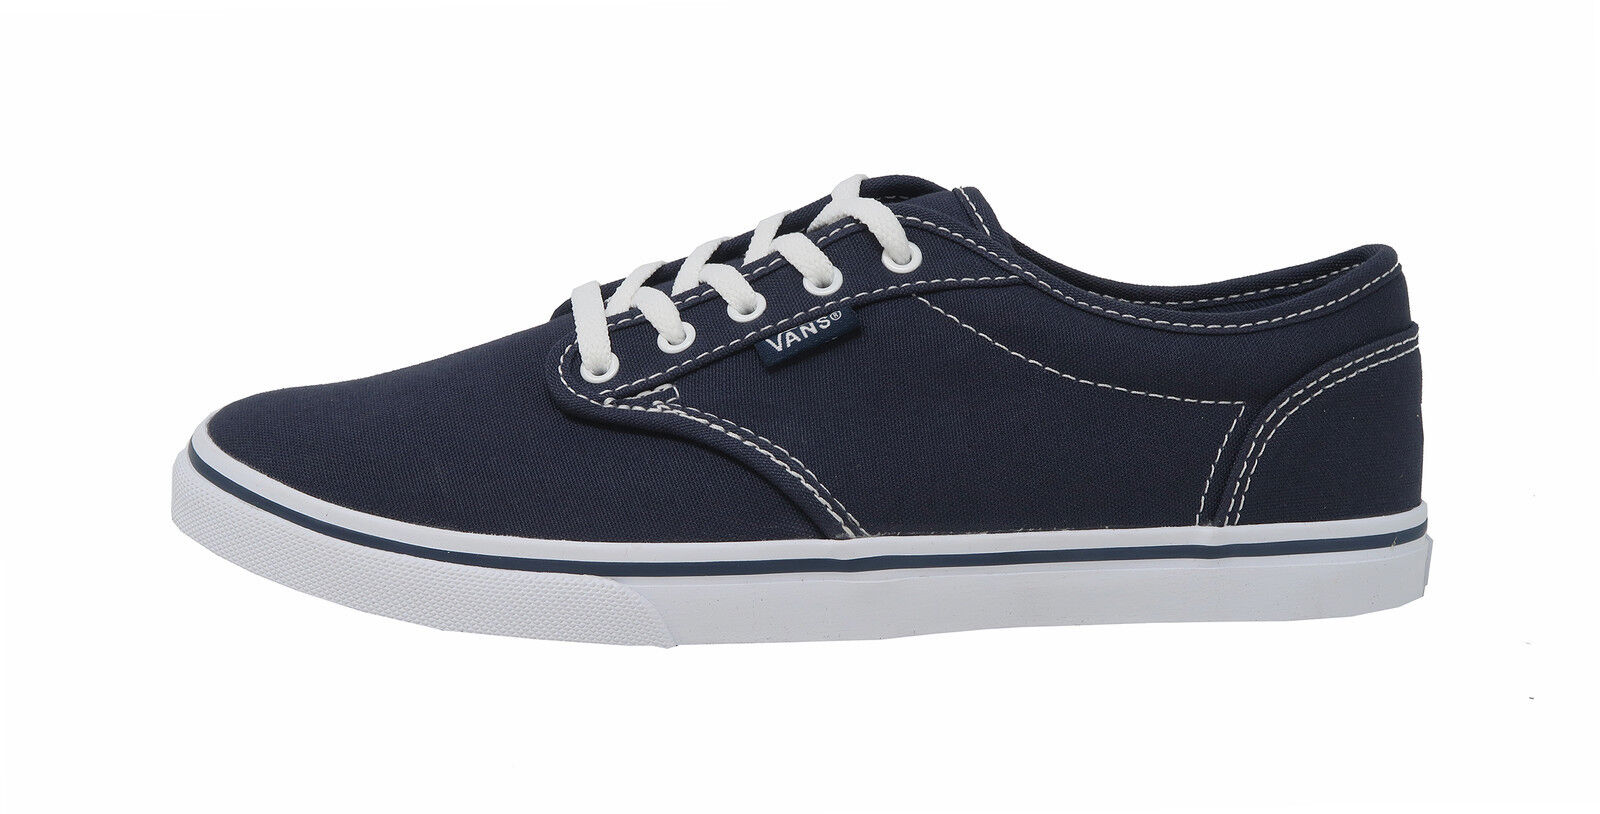 VANS Atwood Low Navy Blau Weiß Lace Up Up Up Lady Turnschuhe damen schuhe 779dbc